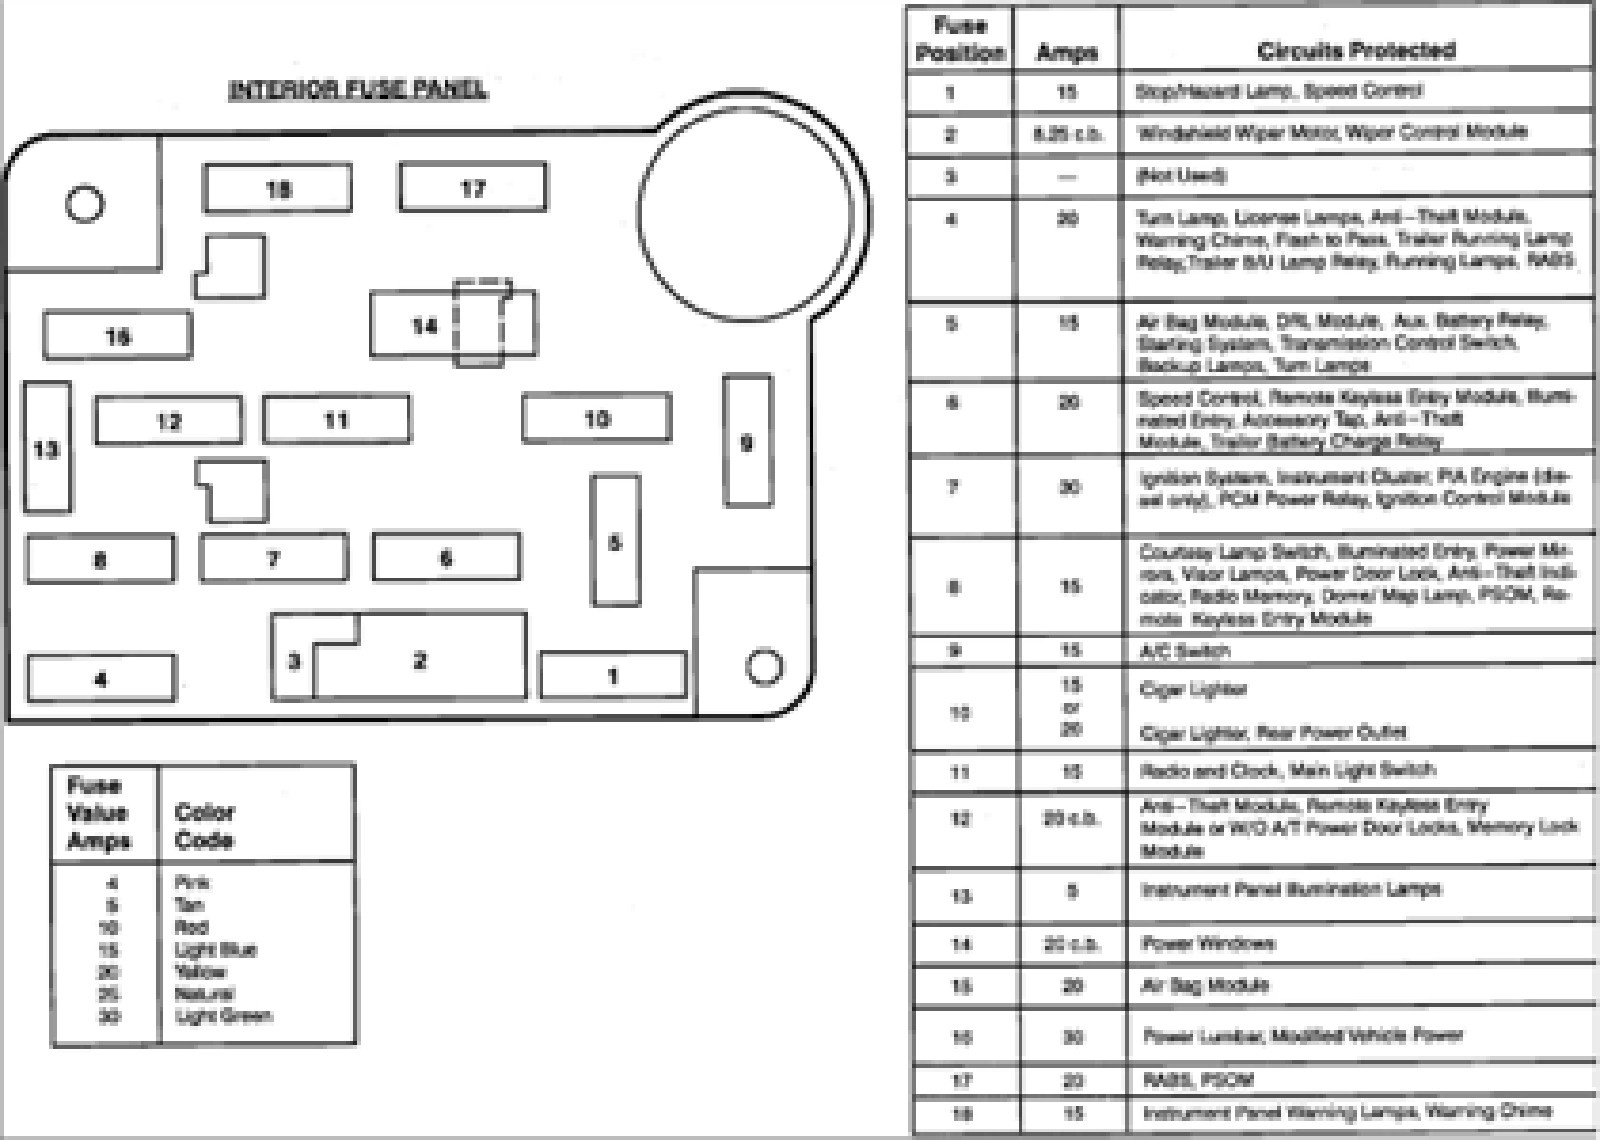 Ford Fuse Box Location Schema Wiring Diagrams 2013 Focus E 150 Questions Diagram For A 1993 Econoline Van 2003